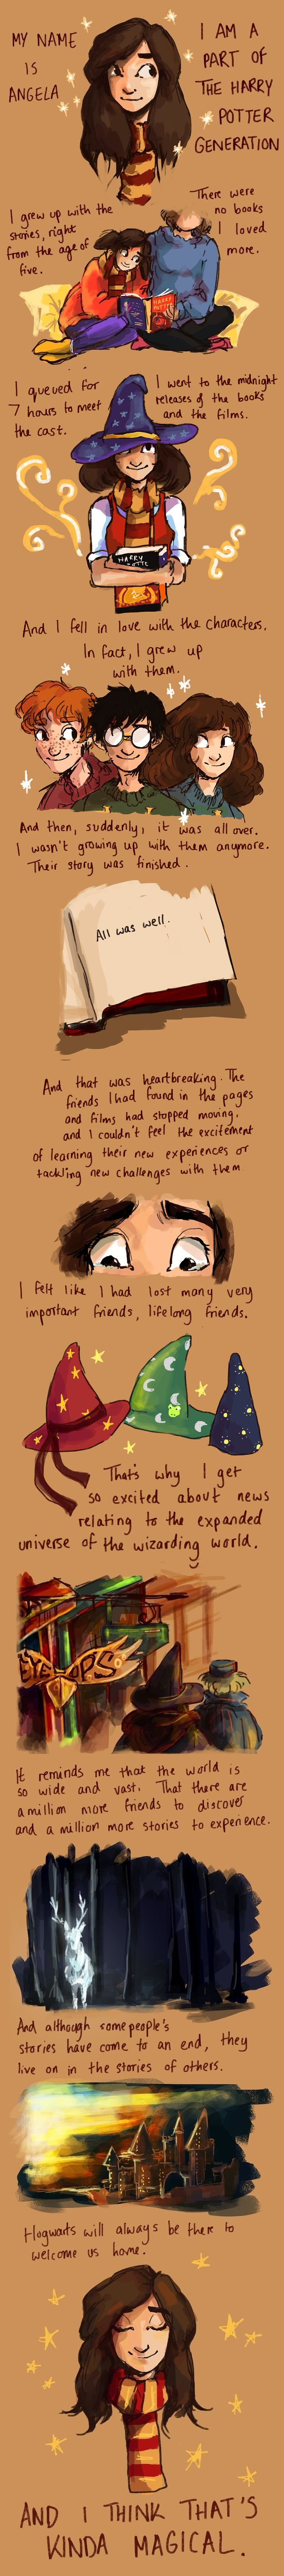 """What It's Like Being A Part Of The """"Harry Potter"""" Generation.its so true, except dat my name is not angela :-p (sorry for my bad humor)"""